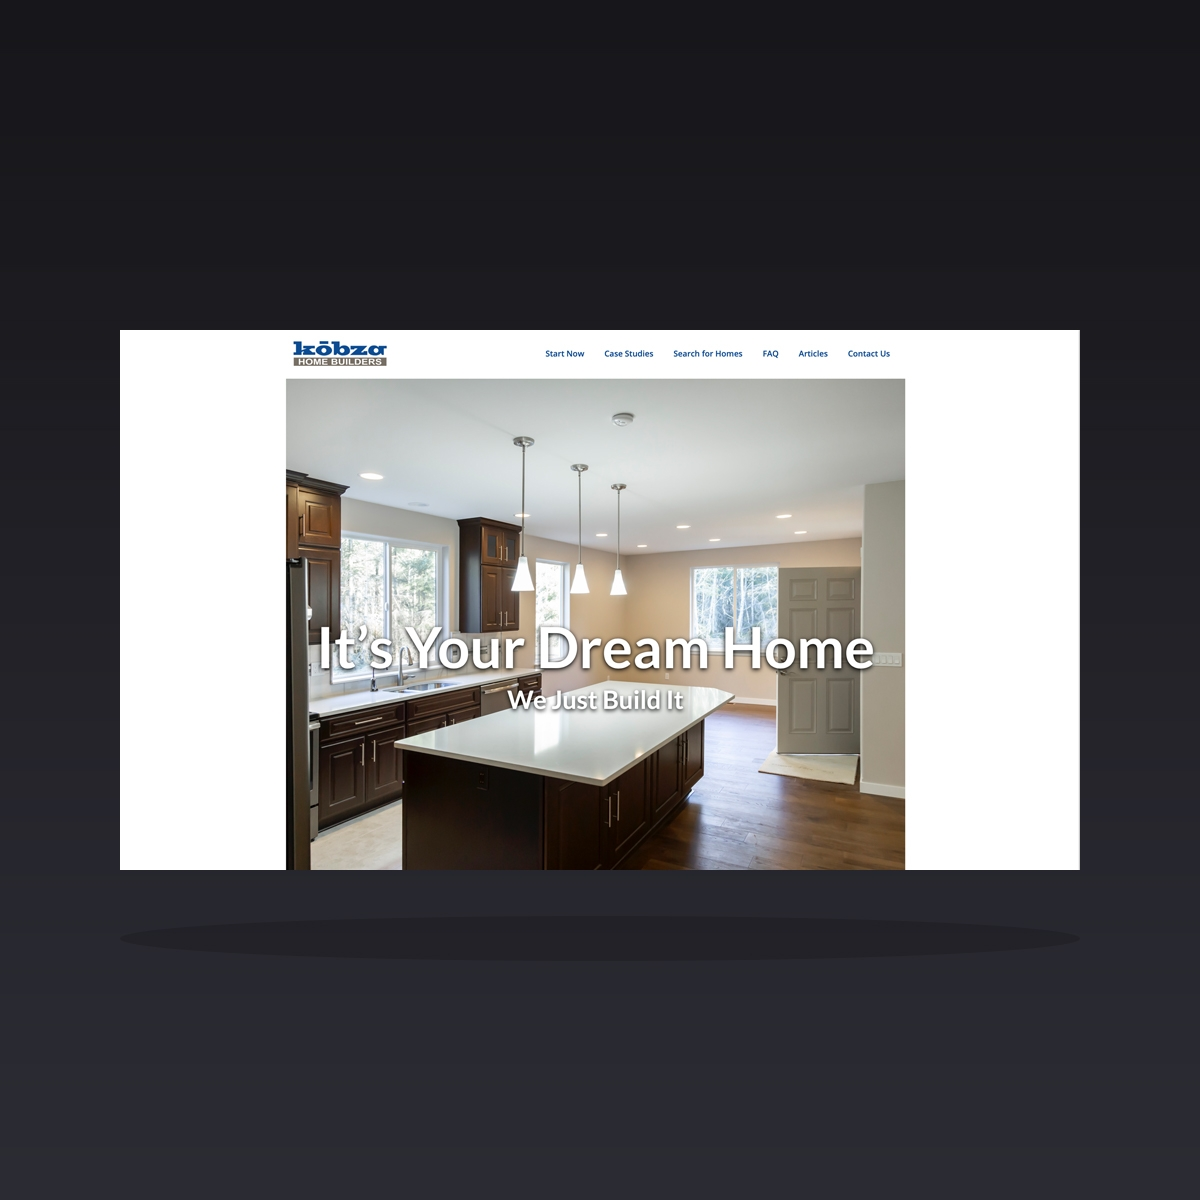 Kobza Home Builders (Lacey, WA) website design by Clarity